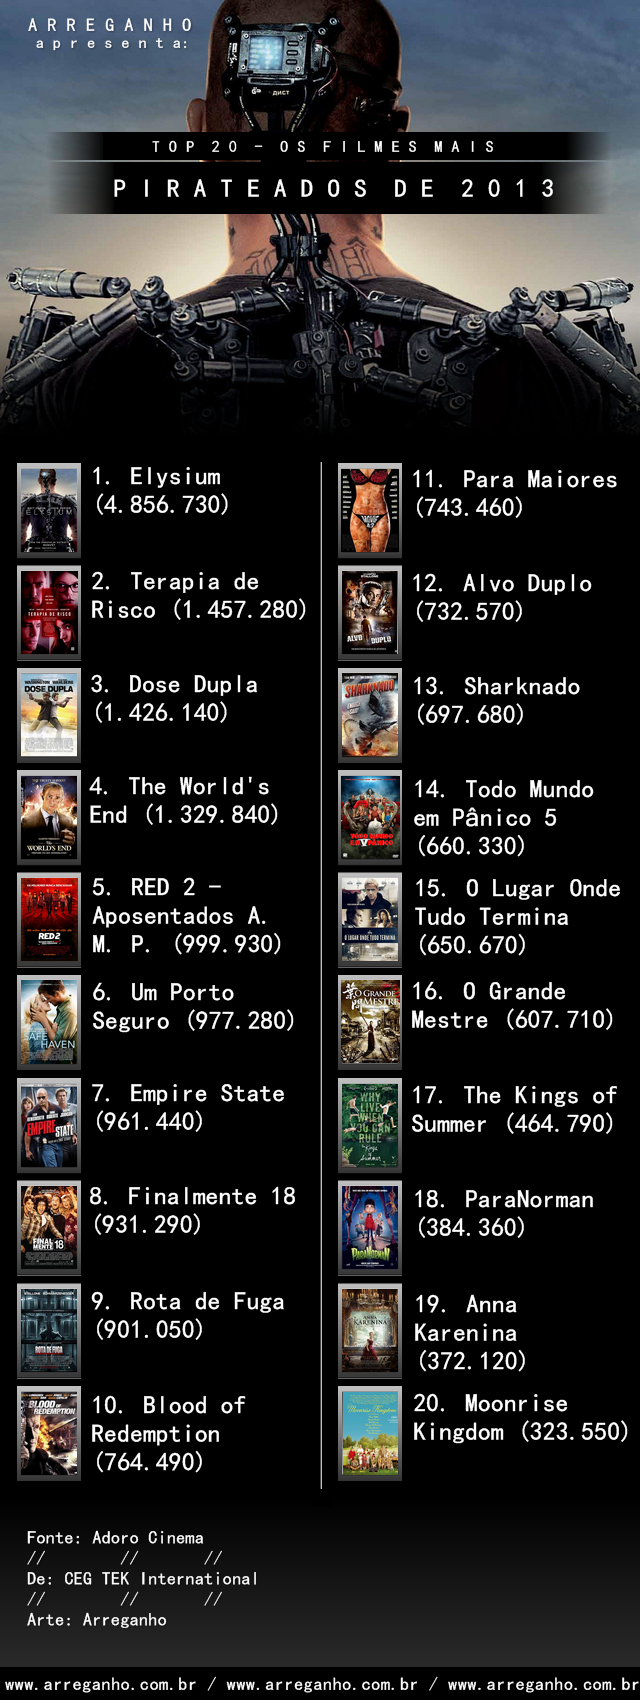 Top 20: Os Filmes Mais Pirateados de 2013